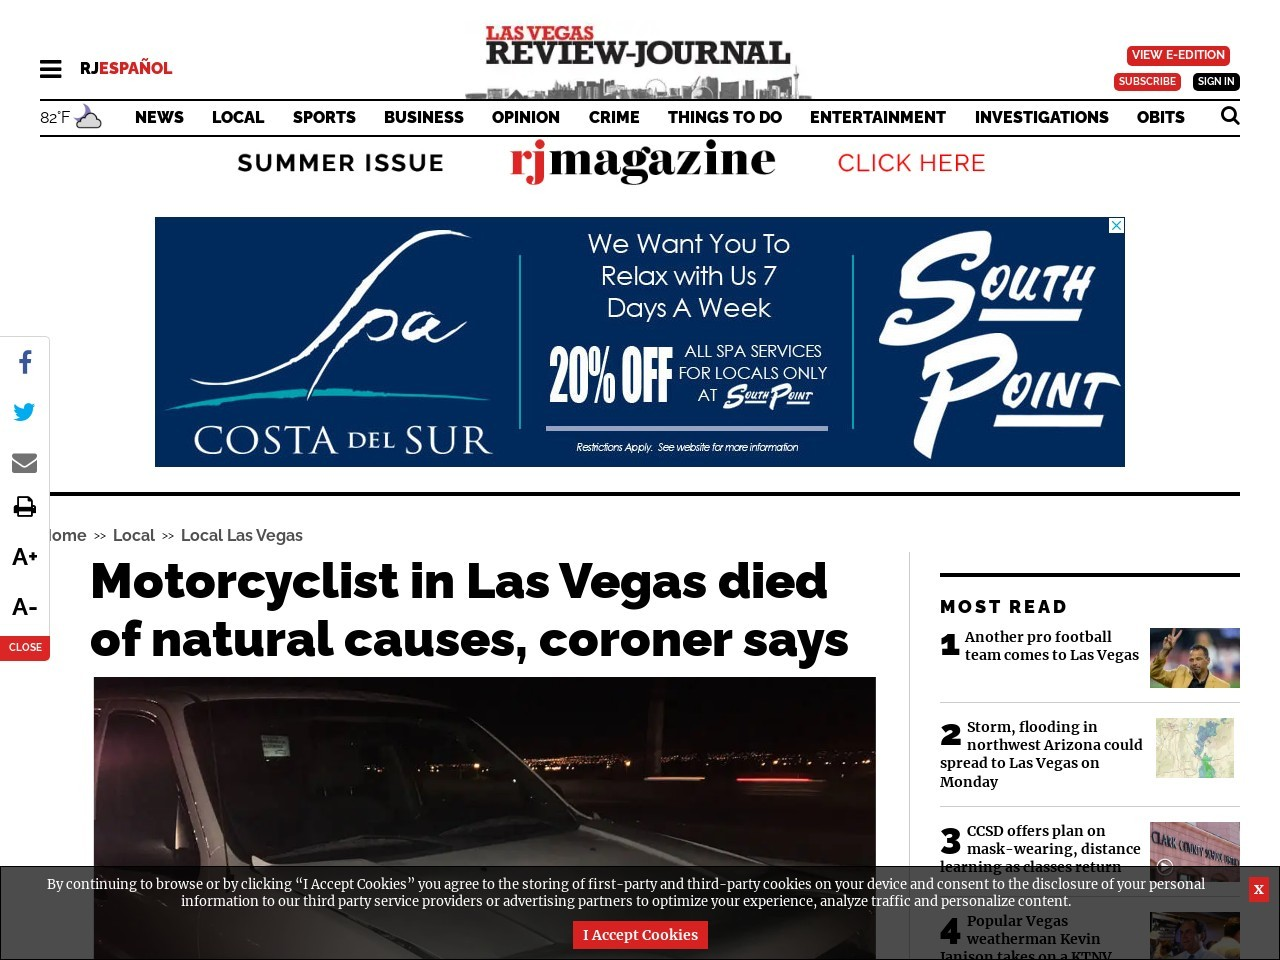 Motorcyclist in Las Vegas died of natural causes, coroner says